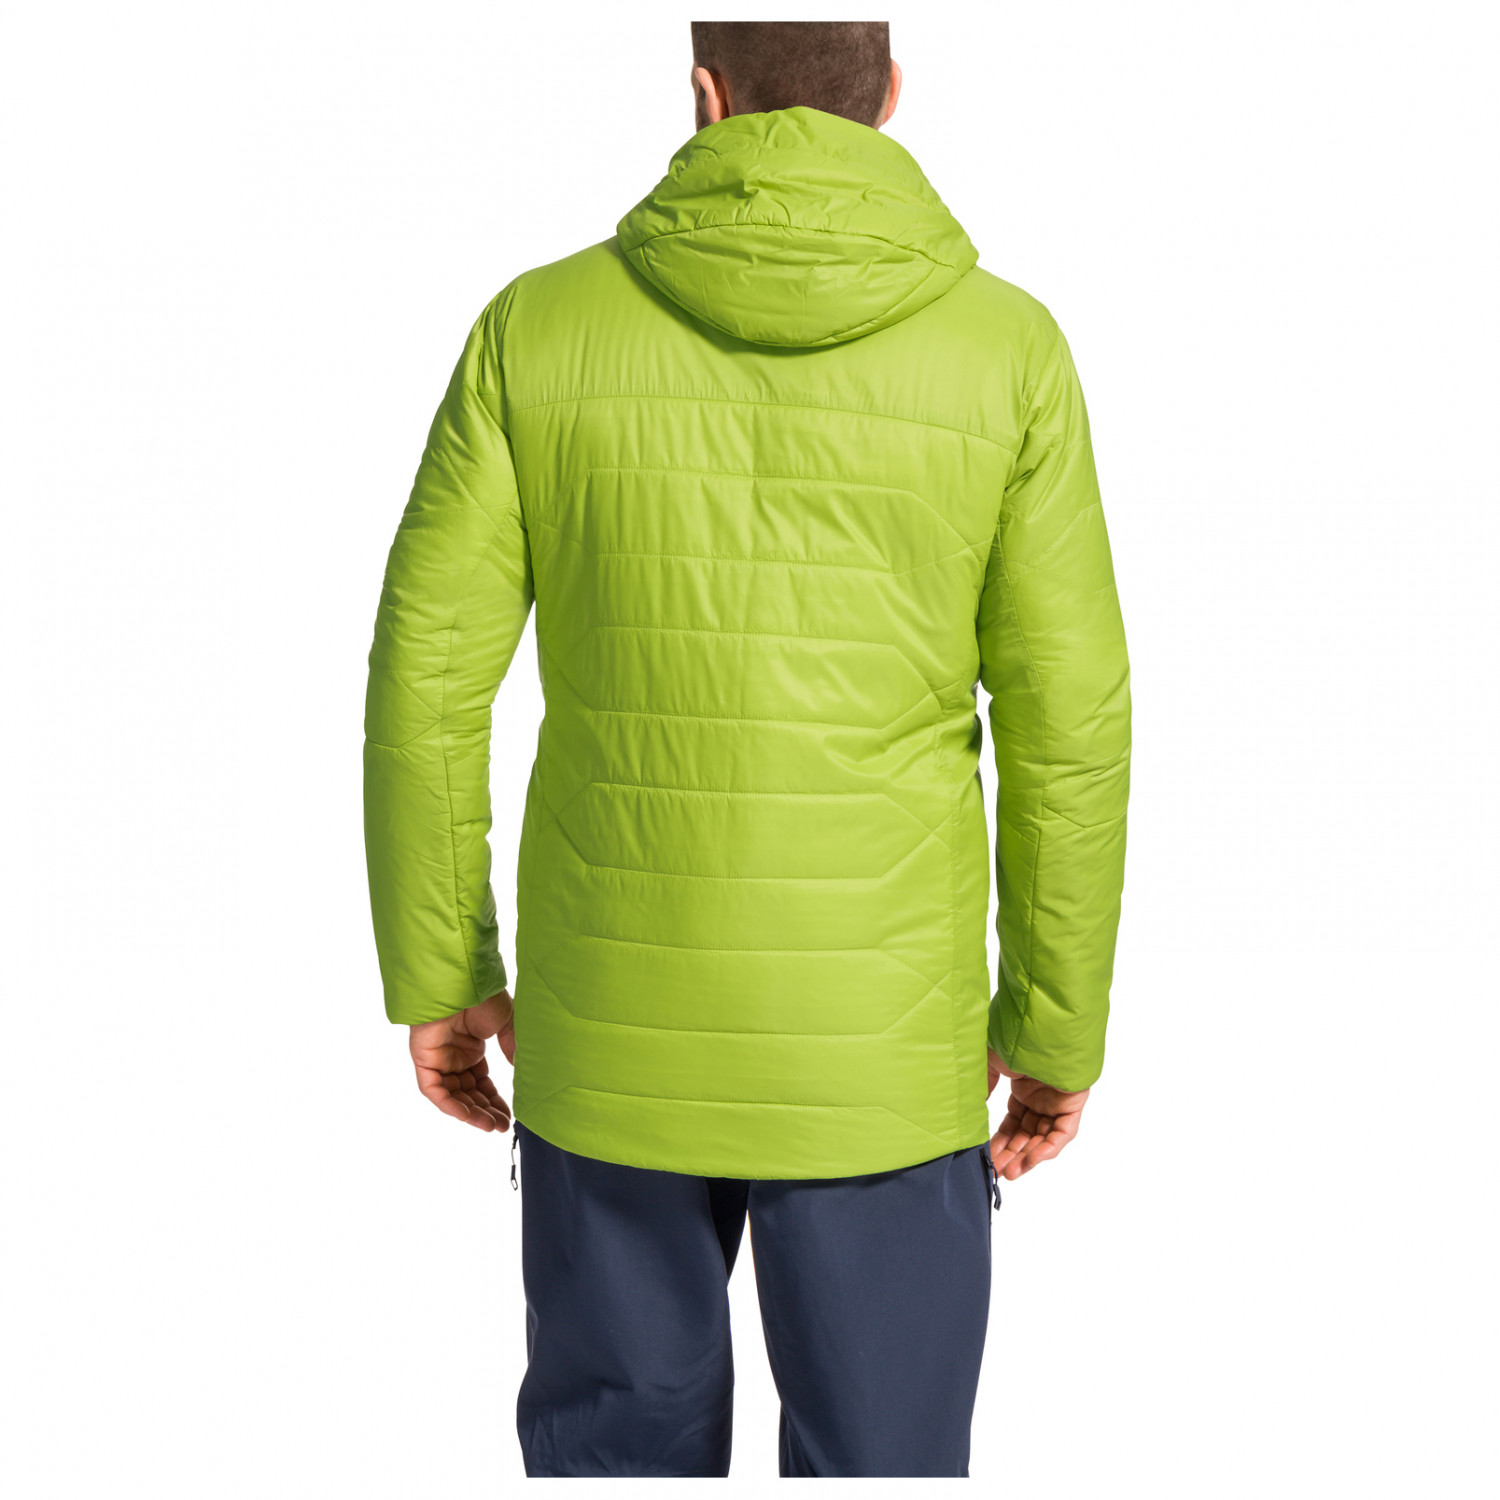 VAUDE Damen Back Bowl Insulation f/ür Skitouren und Freeride Jacke